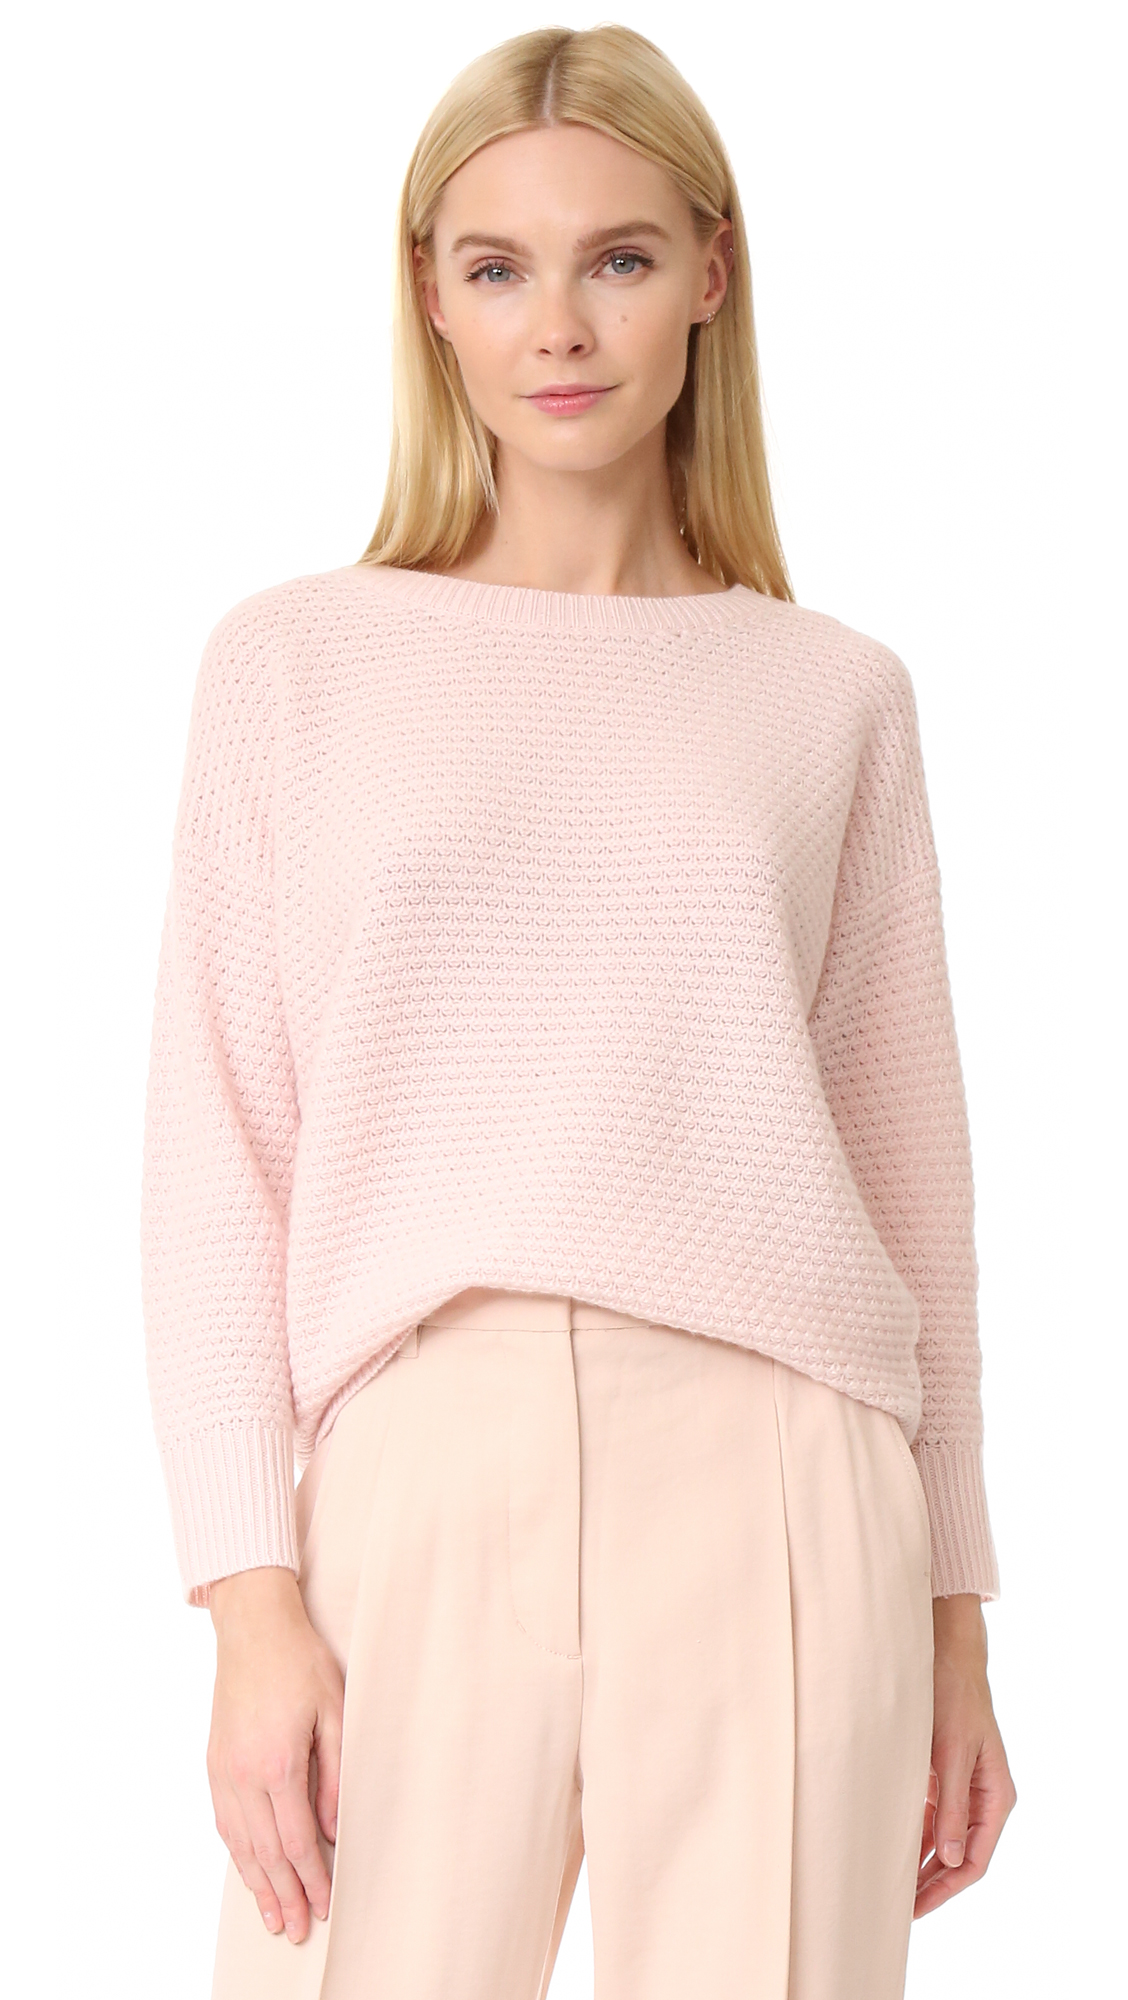 A plush Claudia Schiffer x TSE Cashmere sweater with light texture throughout. Crew neckline. Long sleeves. Fabric: Soft knit. 100% cashmere. Dry clean. Imported, China. Measurements Length: 24.75in / 63cm, from shoulder Measurements from size S. Available sizes: